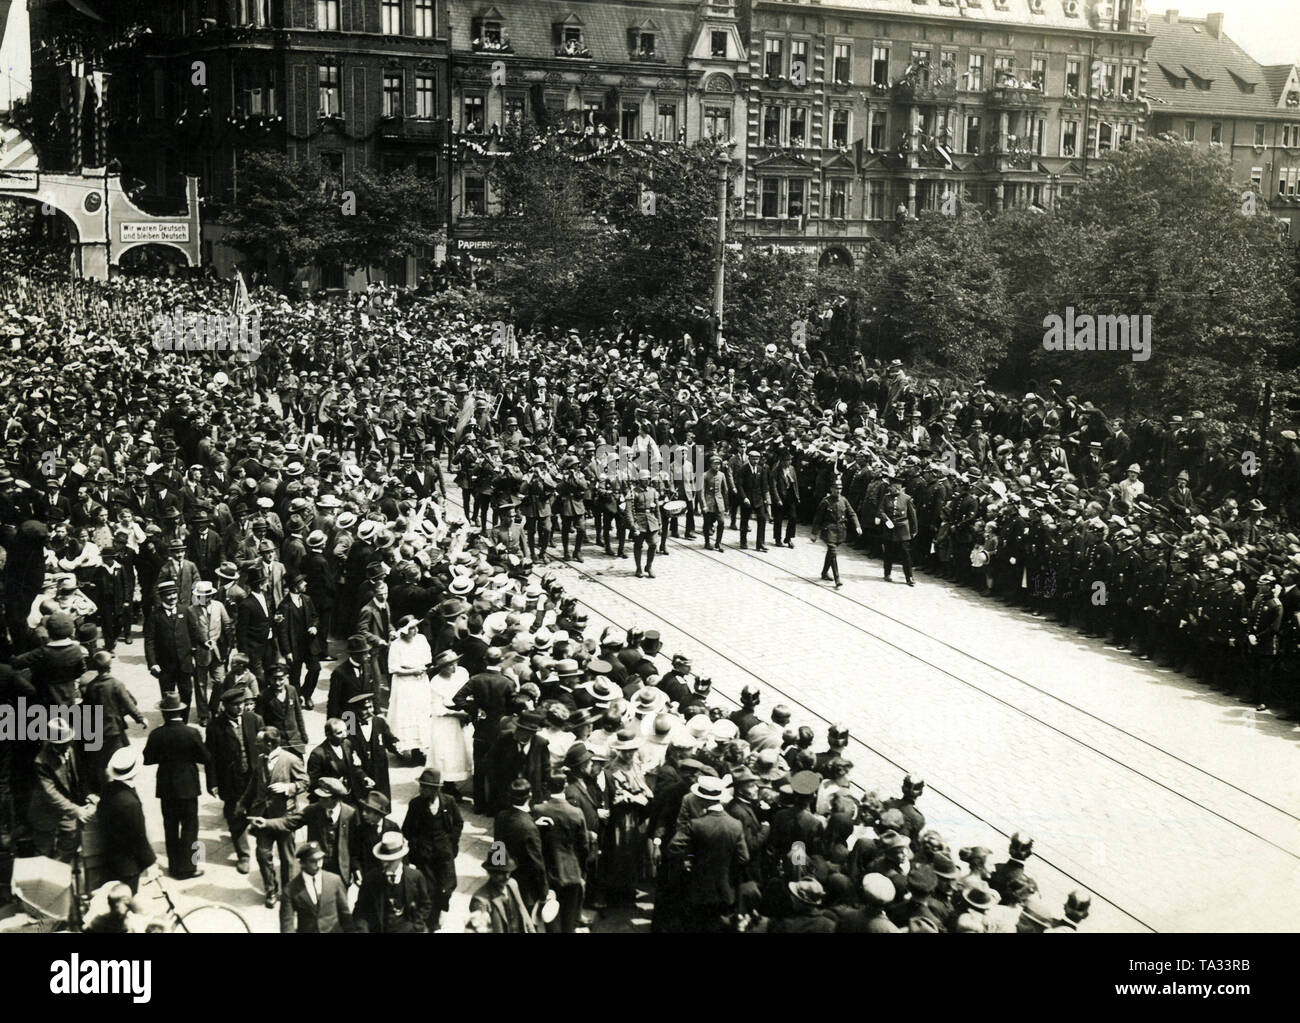 After the decision of the Allied  Control Commission, Gleiwitz remained part of the German Reich. Here the garrison of the Reichswehr invades the city in June accompanied by the cheers of the population. - Stock Image